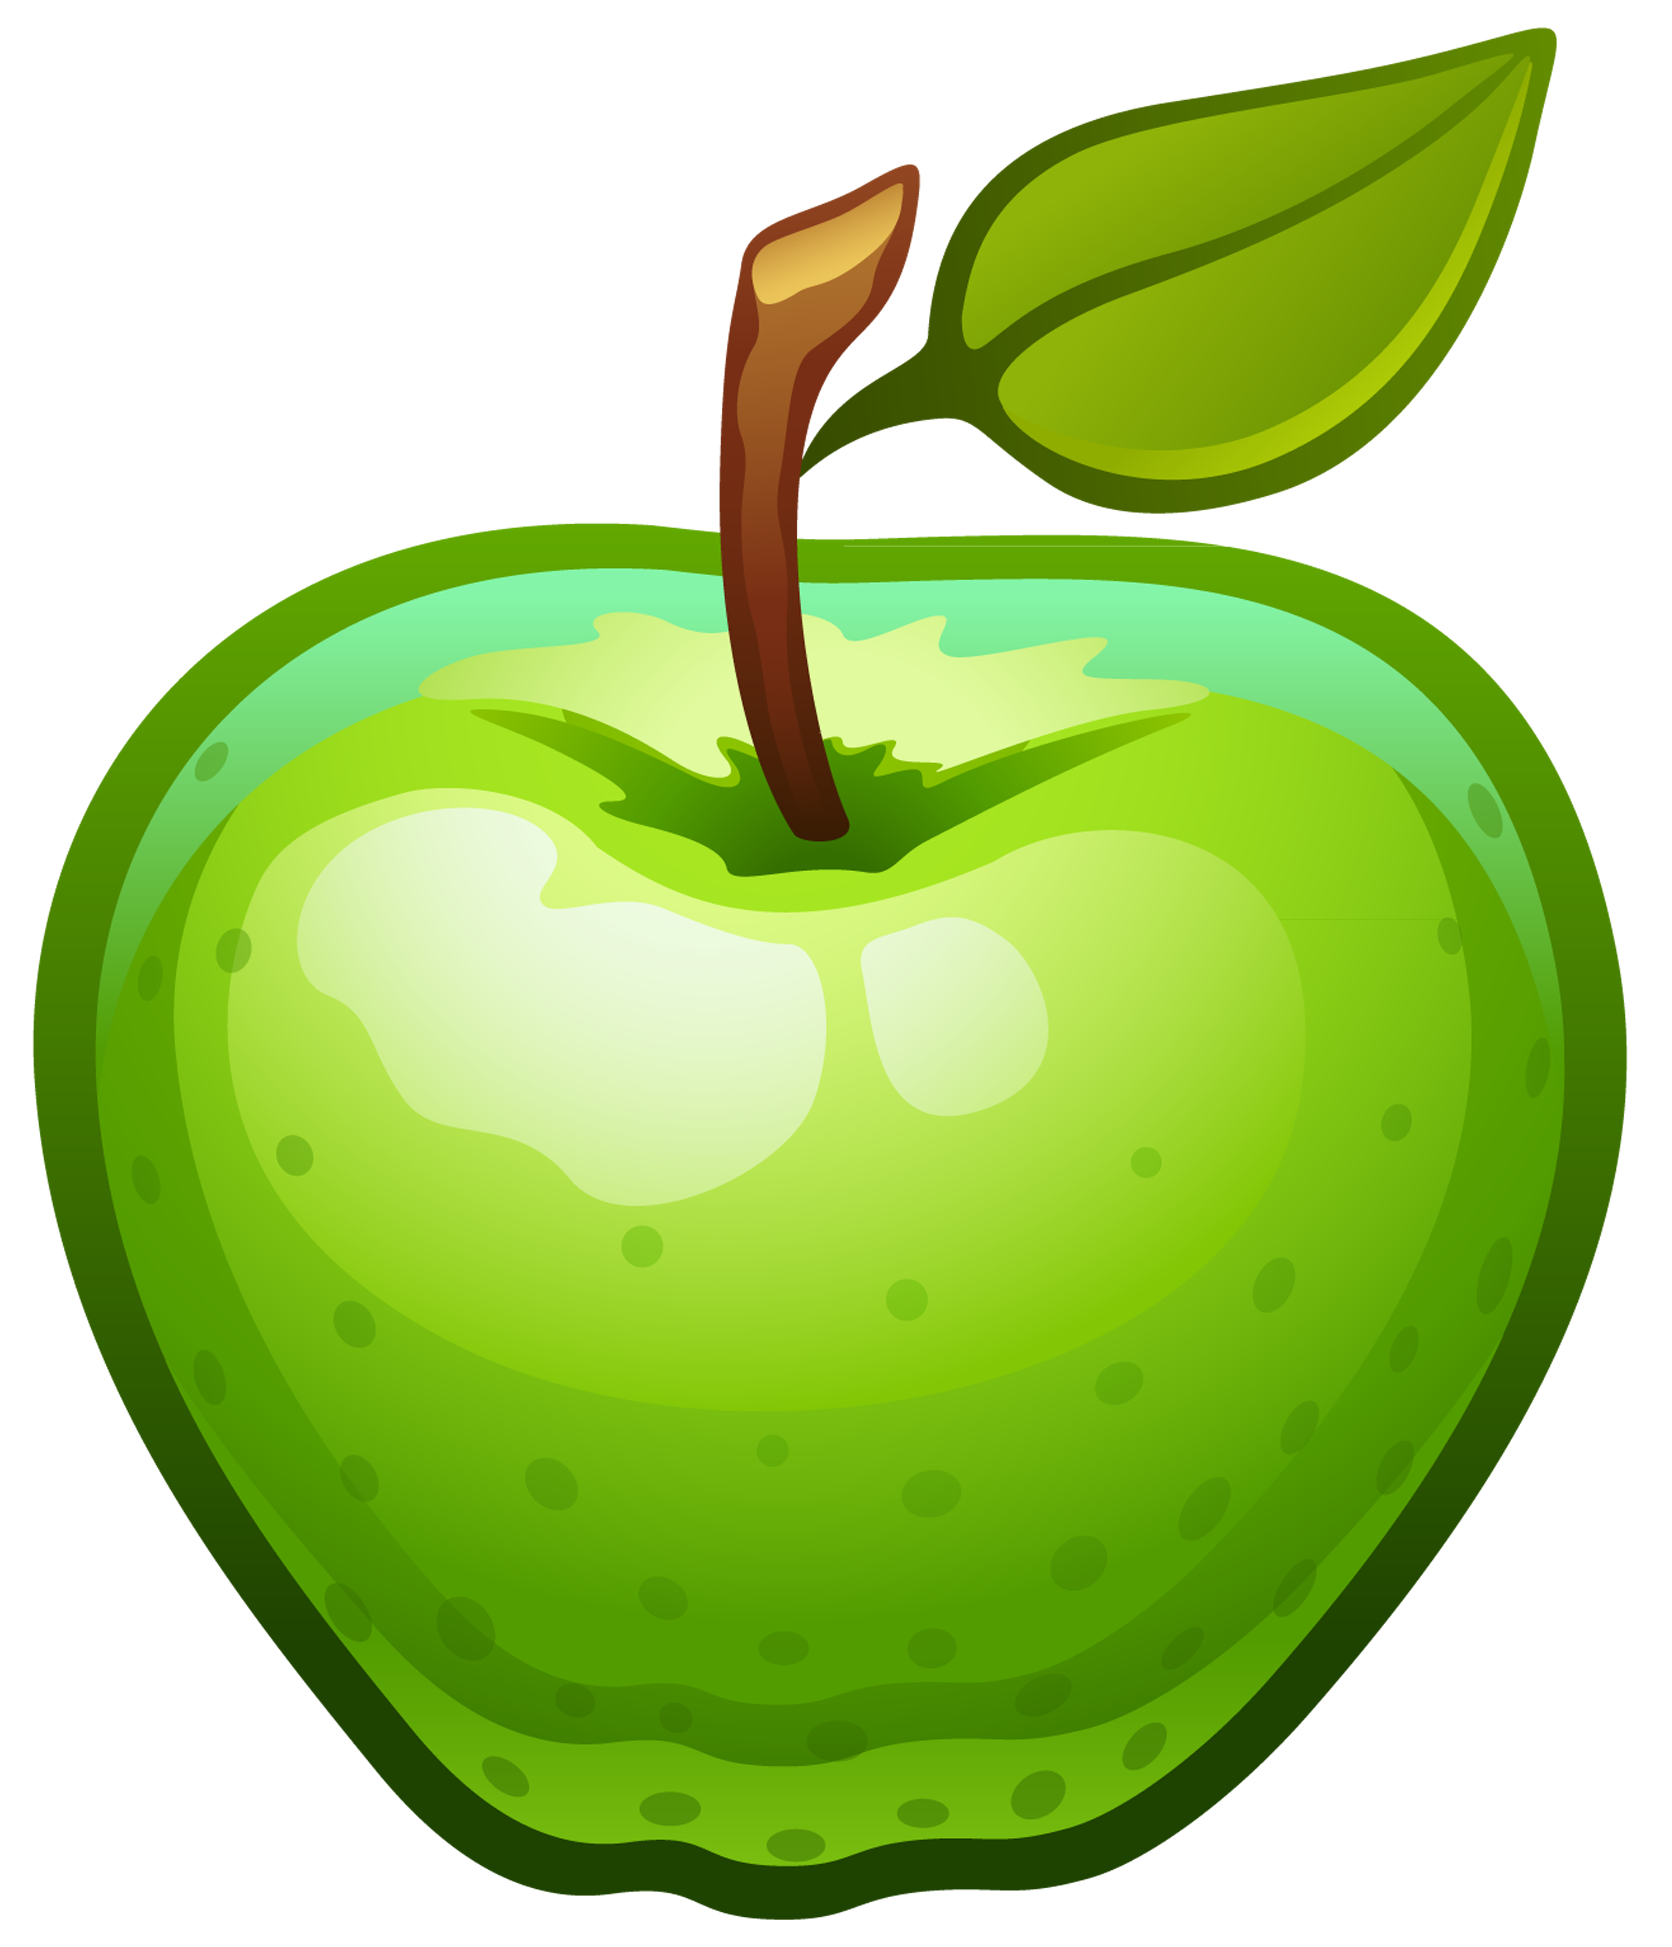 Inside apple clipart image royalty free stock Large Painted Green Apple PNG Clipart | Gallery Yopriceville - High ... image royalty free stock